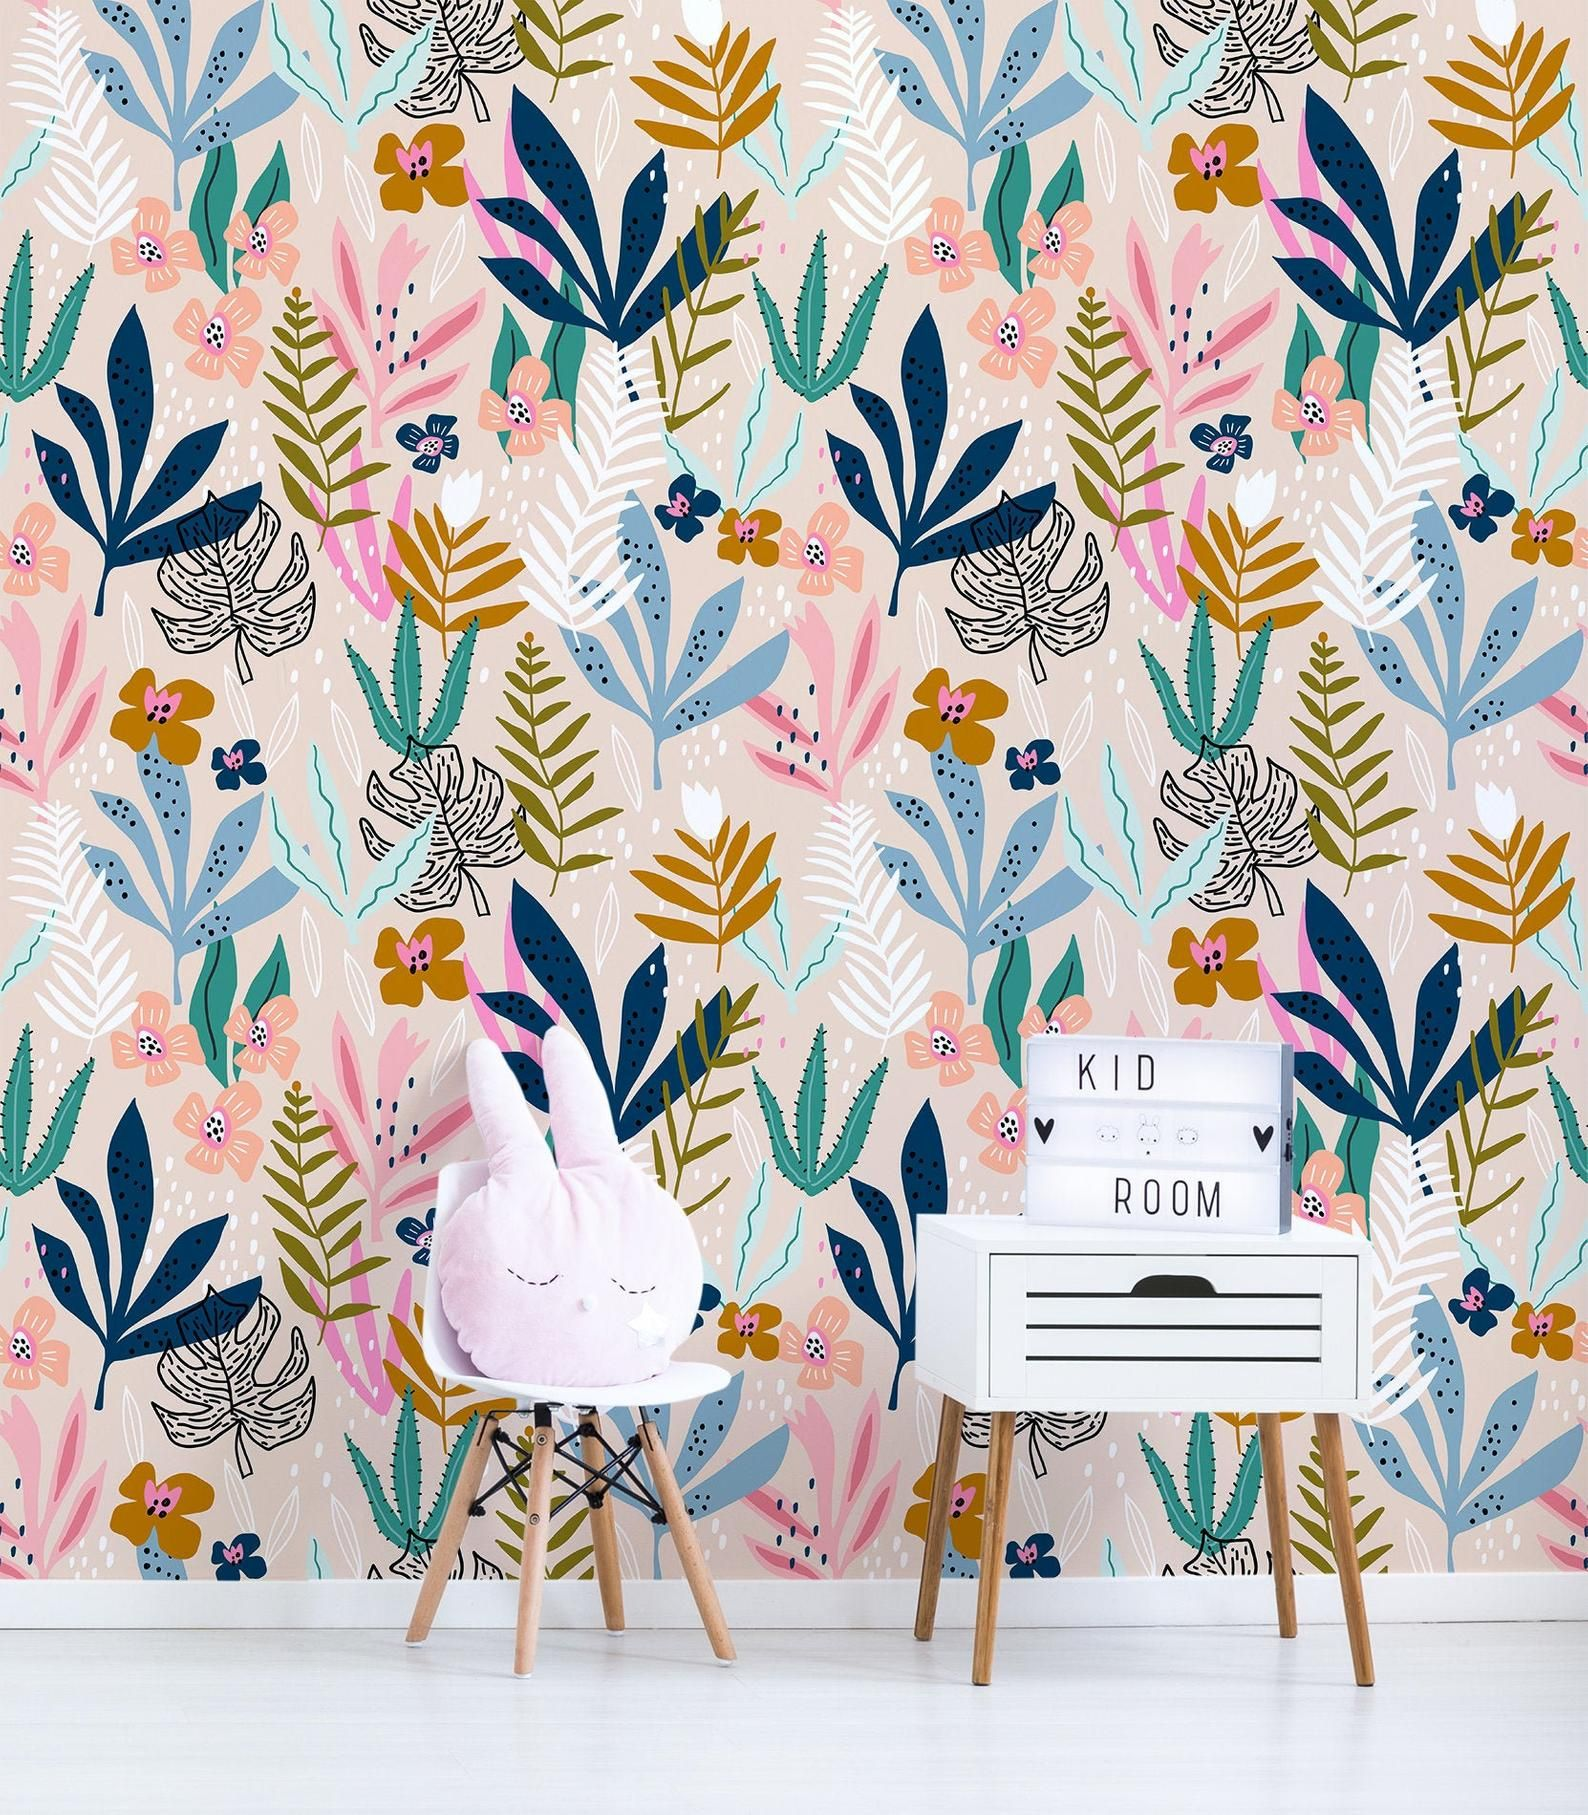 Creative Floral Wall Mural For Nursery Peel And Stick Wall Etsy Removable Wallpaper Stick On Wallpaper Wall Murals